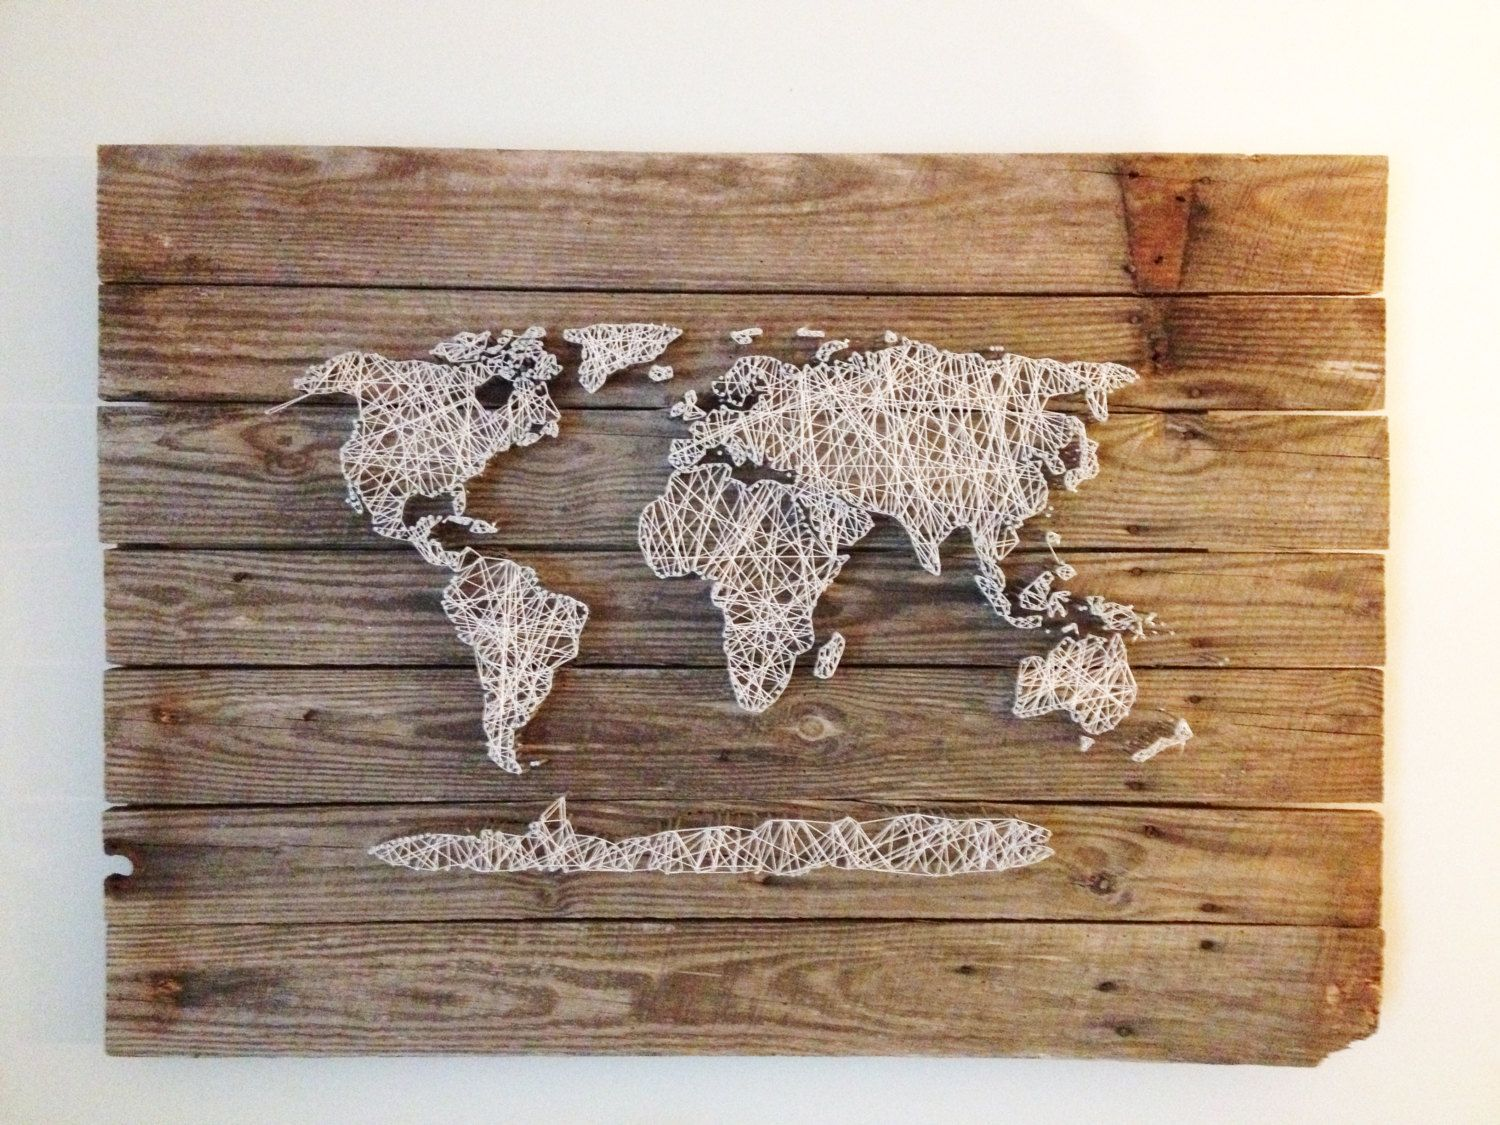 World Map Wood Wall Art world map reclaimed barn door wood string art wall decor, 39 x 29